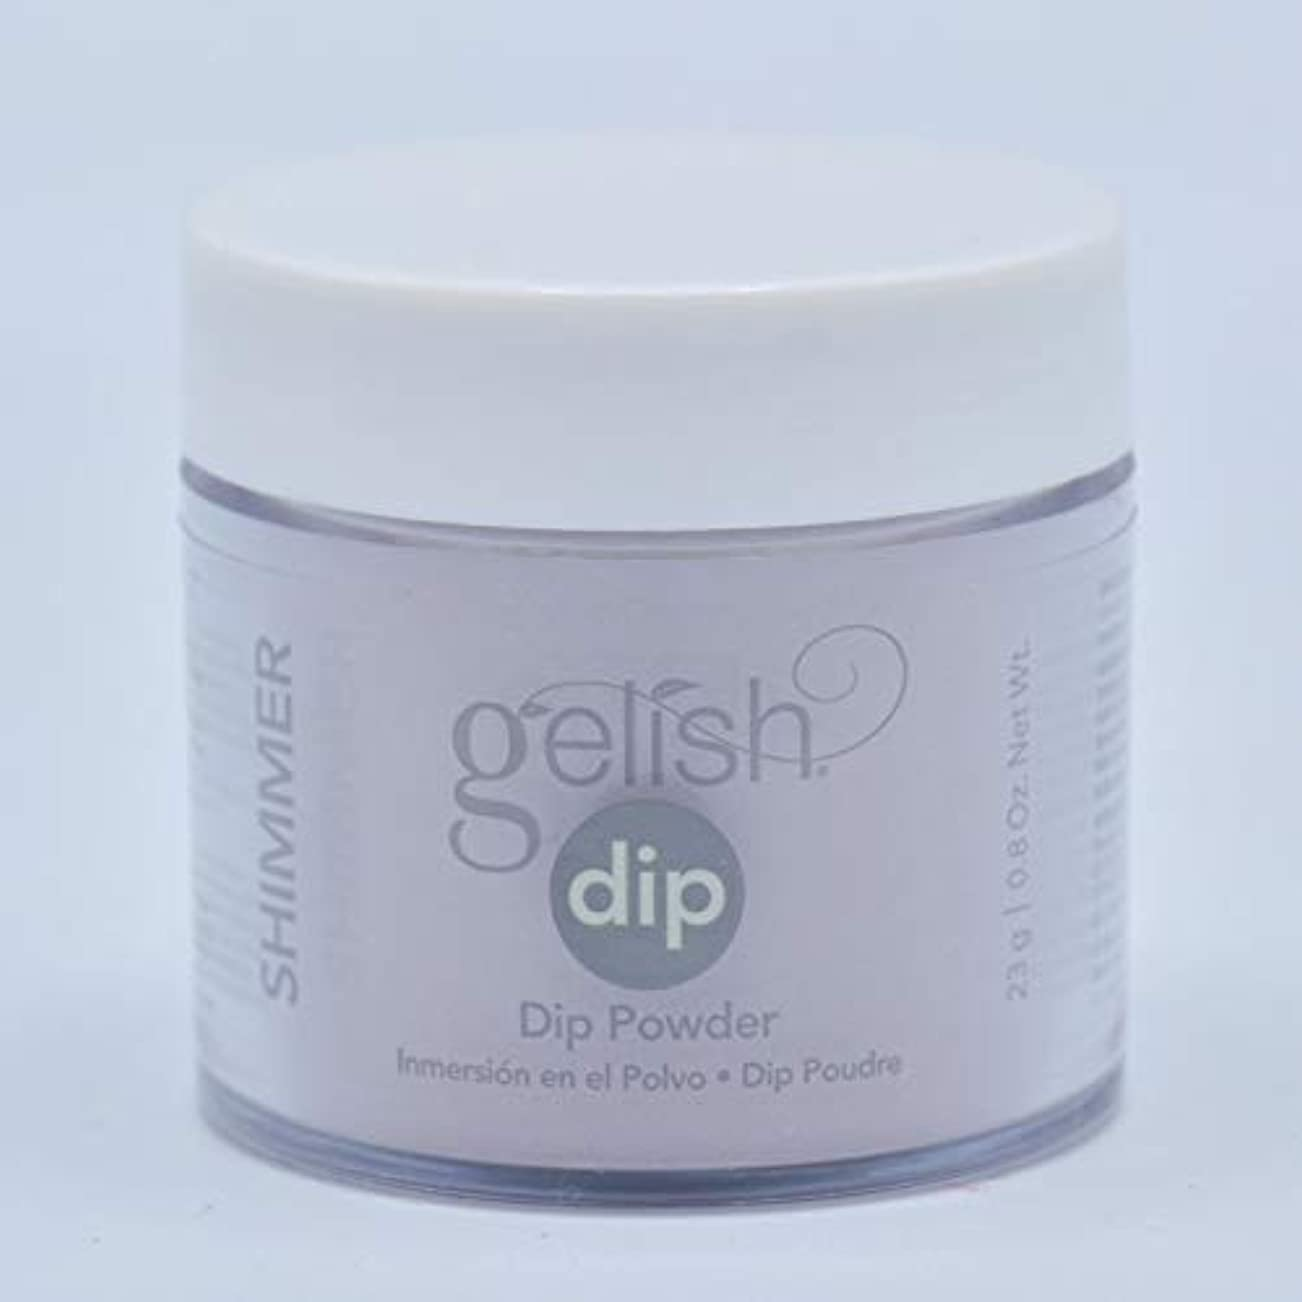 抵抗力があるティーム復活Harmony Gelish - Acrylic Dip Powder - From Rodeo to Rodeo Drive - 23g / 0.8oz